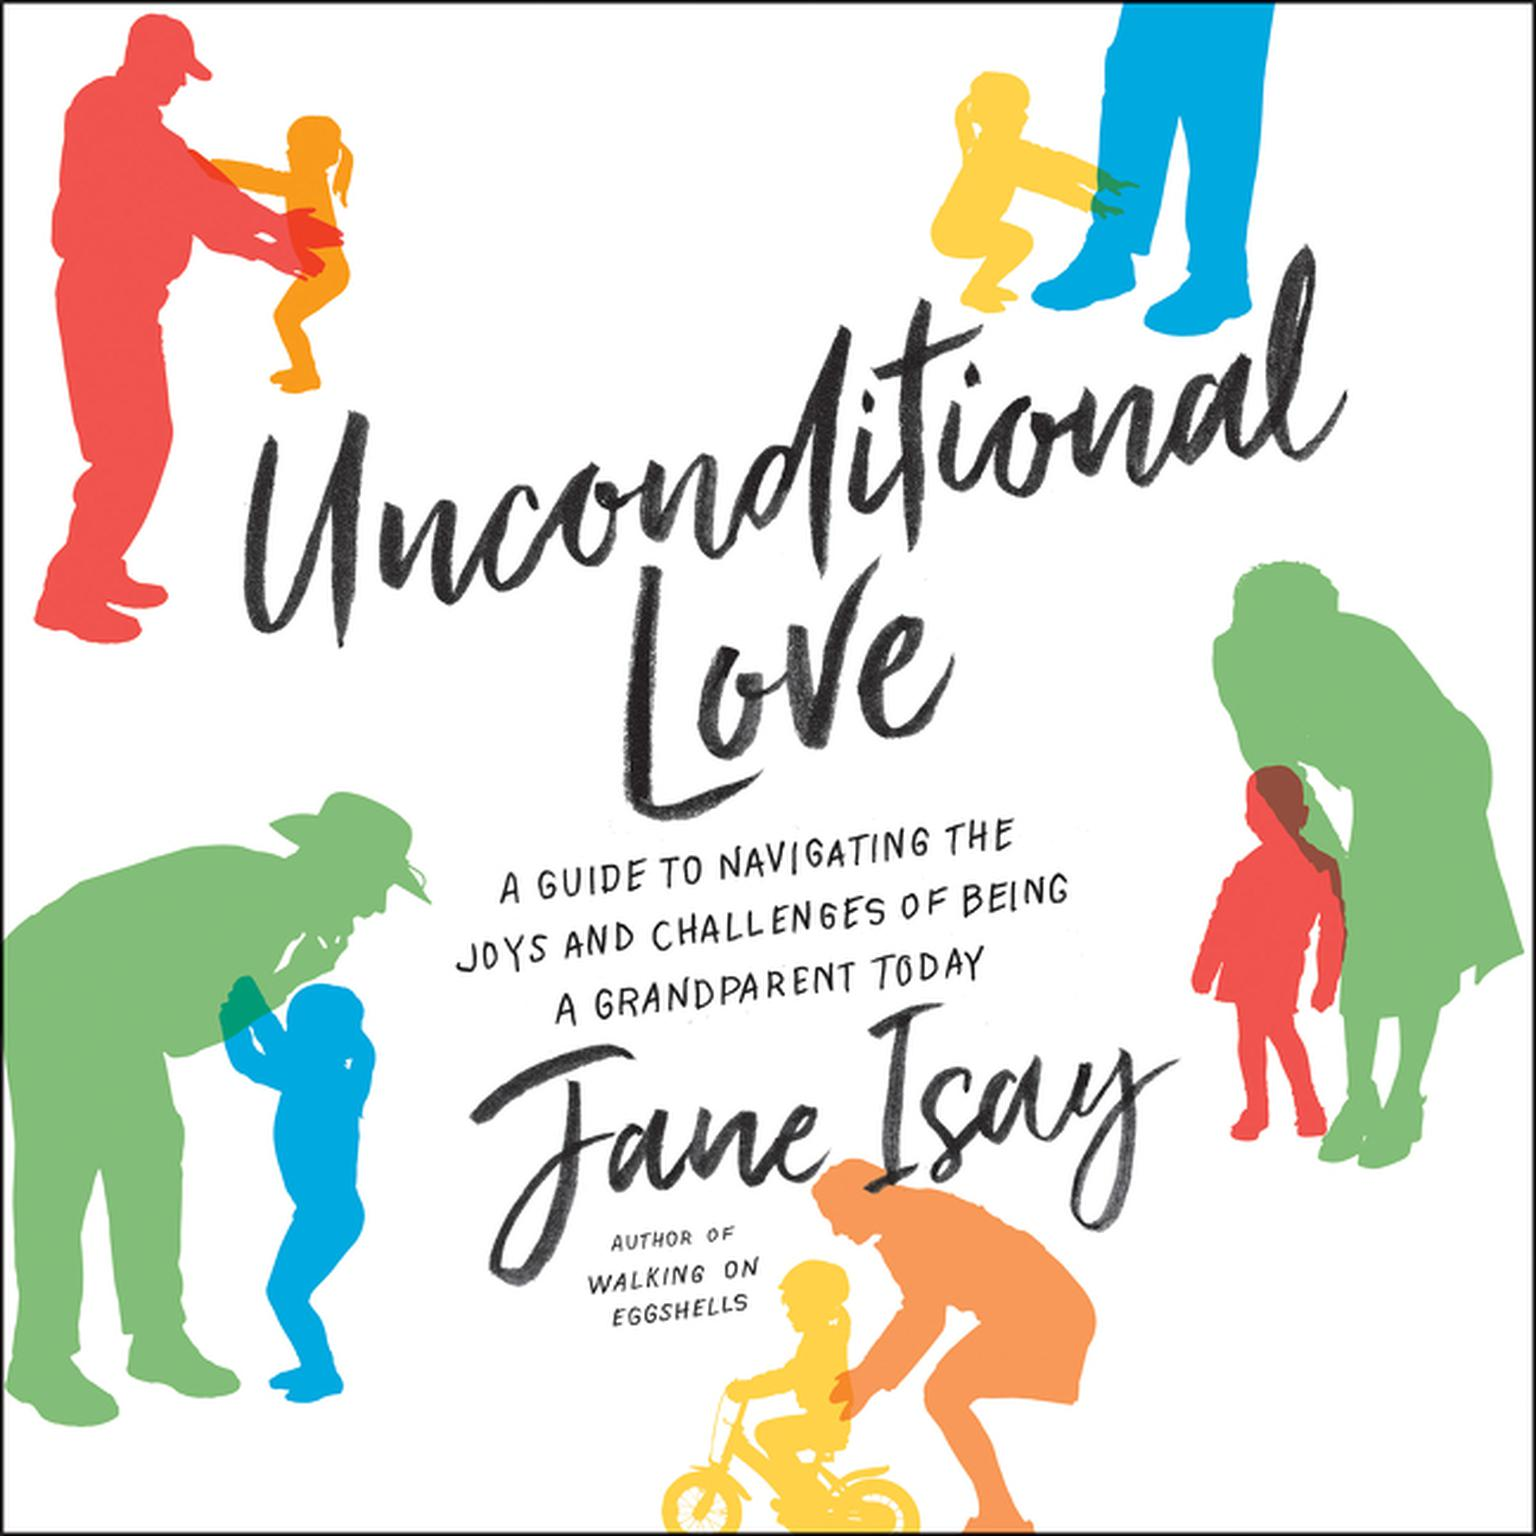 Unconditional Love: A Guide to Navigating the Joys and Challenges of Being a Grandparent Today Audiobook, by Jane Isay